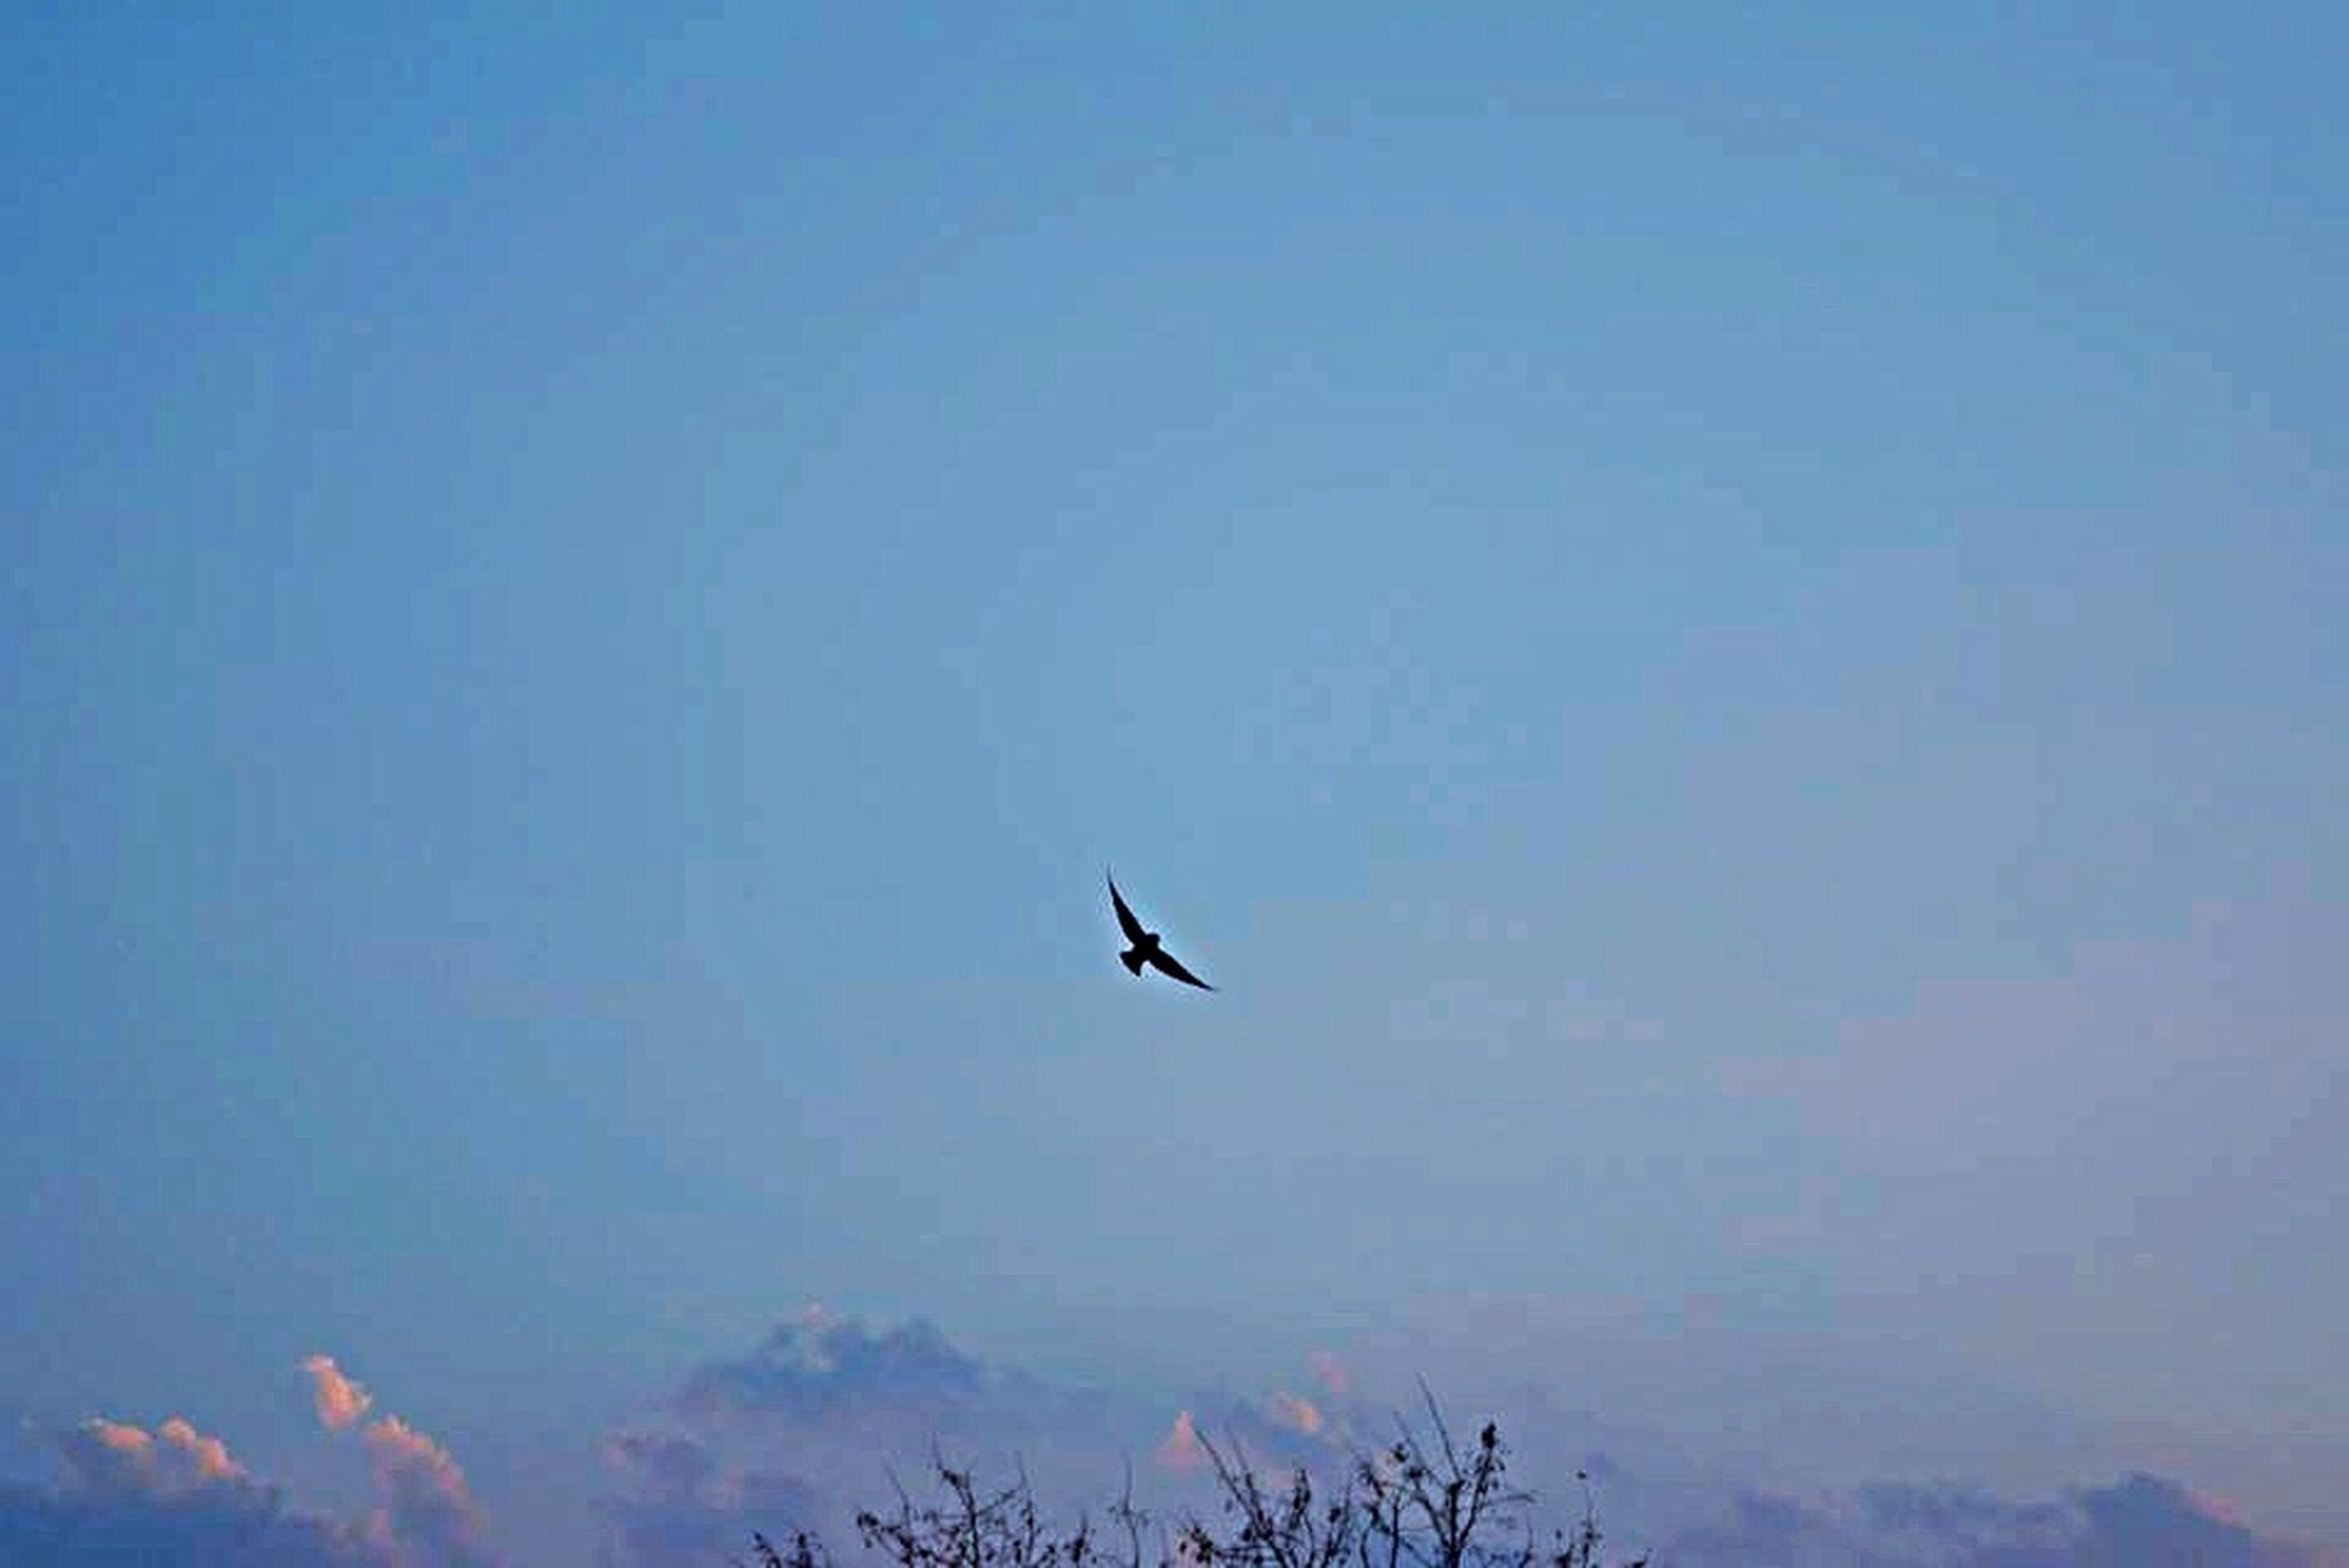 bird, flying, animal themes, animals in the wild, one animal, wildlife, low angle view, mid-air, copy space, spread wings, clear sky, nature, sky, beauty in nature, blue, tranquility, silhouette, scenics, tranquil scene, outdoors